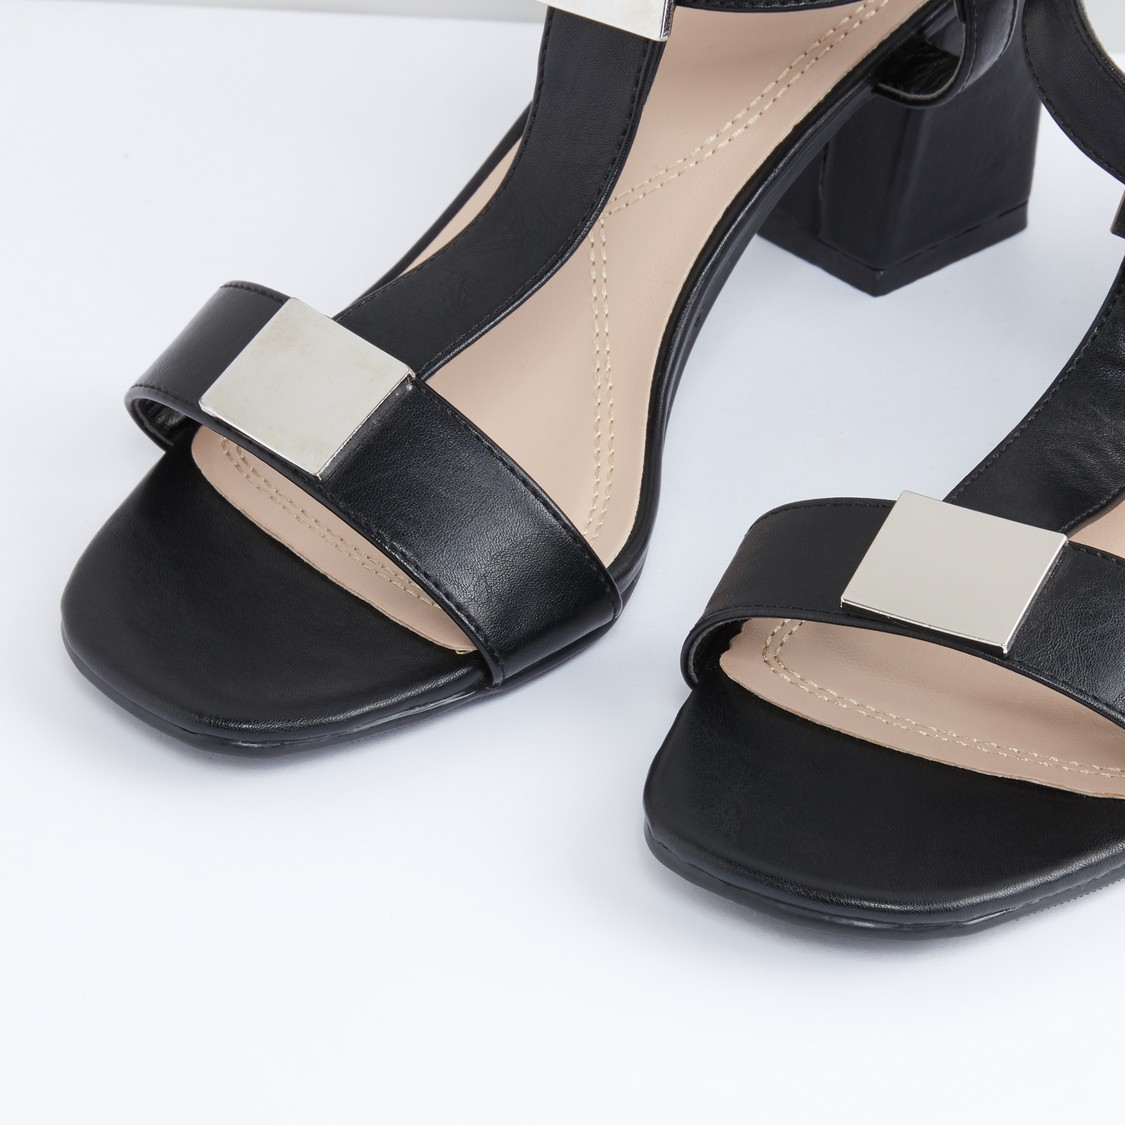 Metallic Detail Block Heel Sandals with Ankle Strap